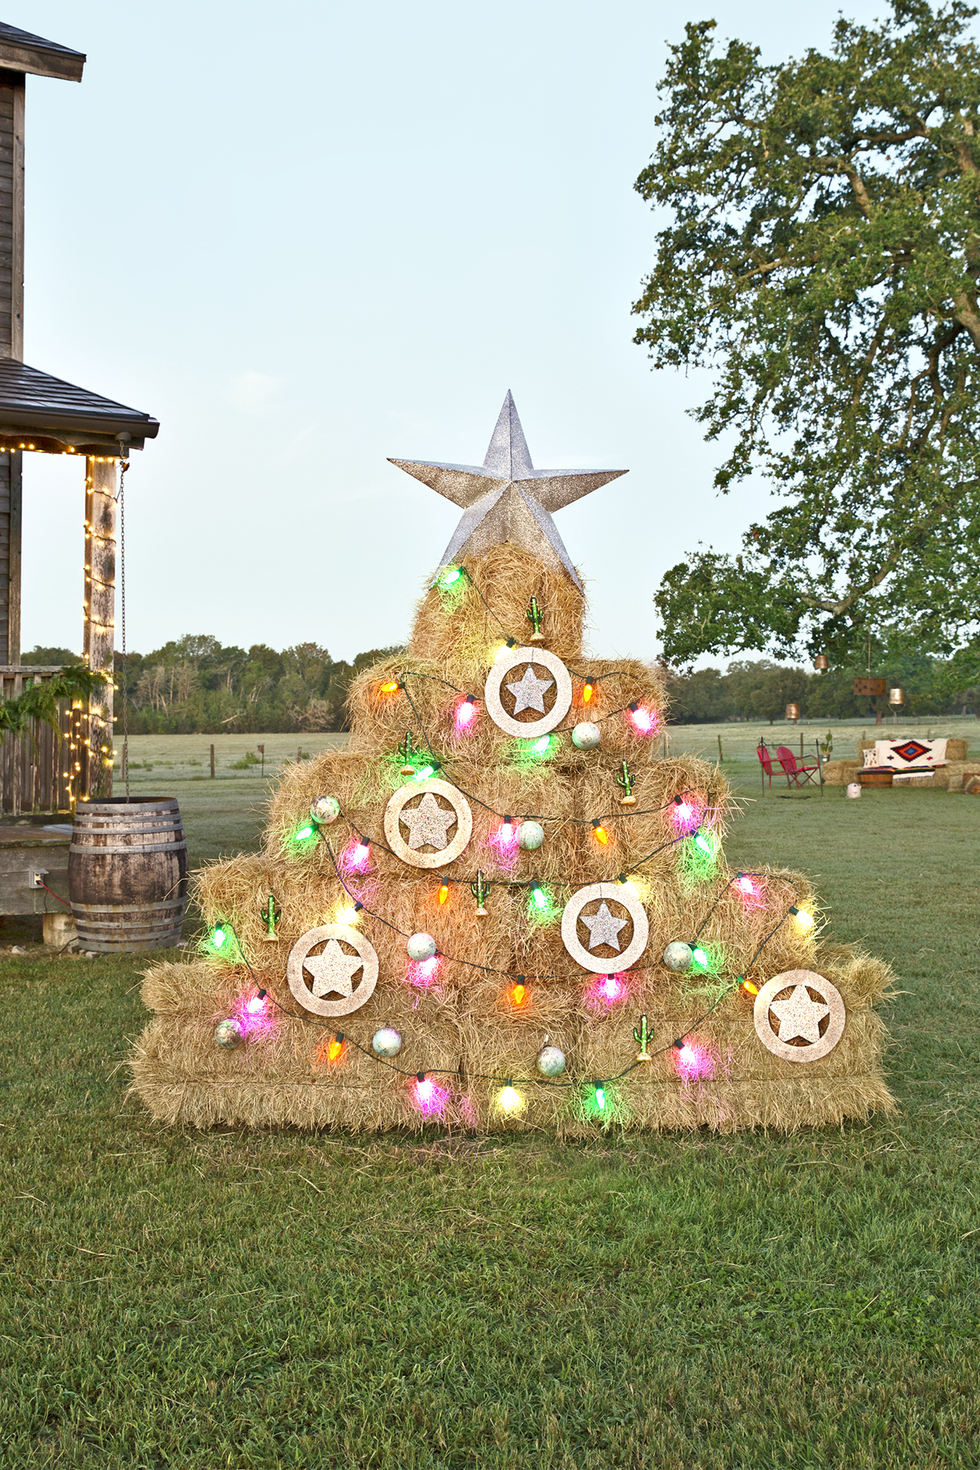 27 Best Alternative Christmas Trees Made for Modern Holiday Décor